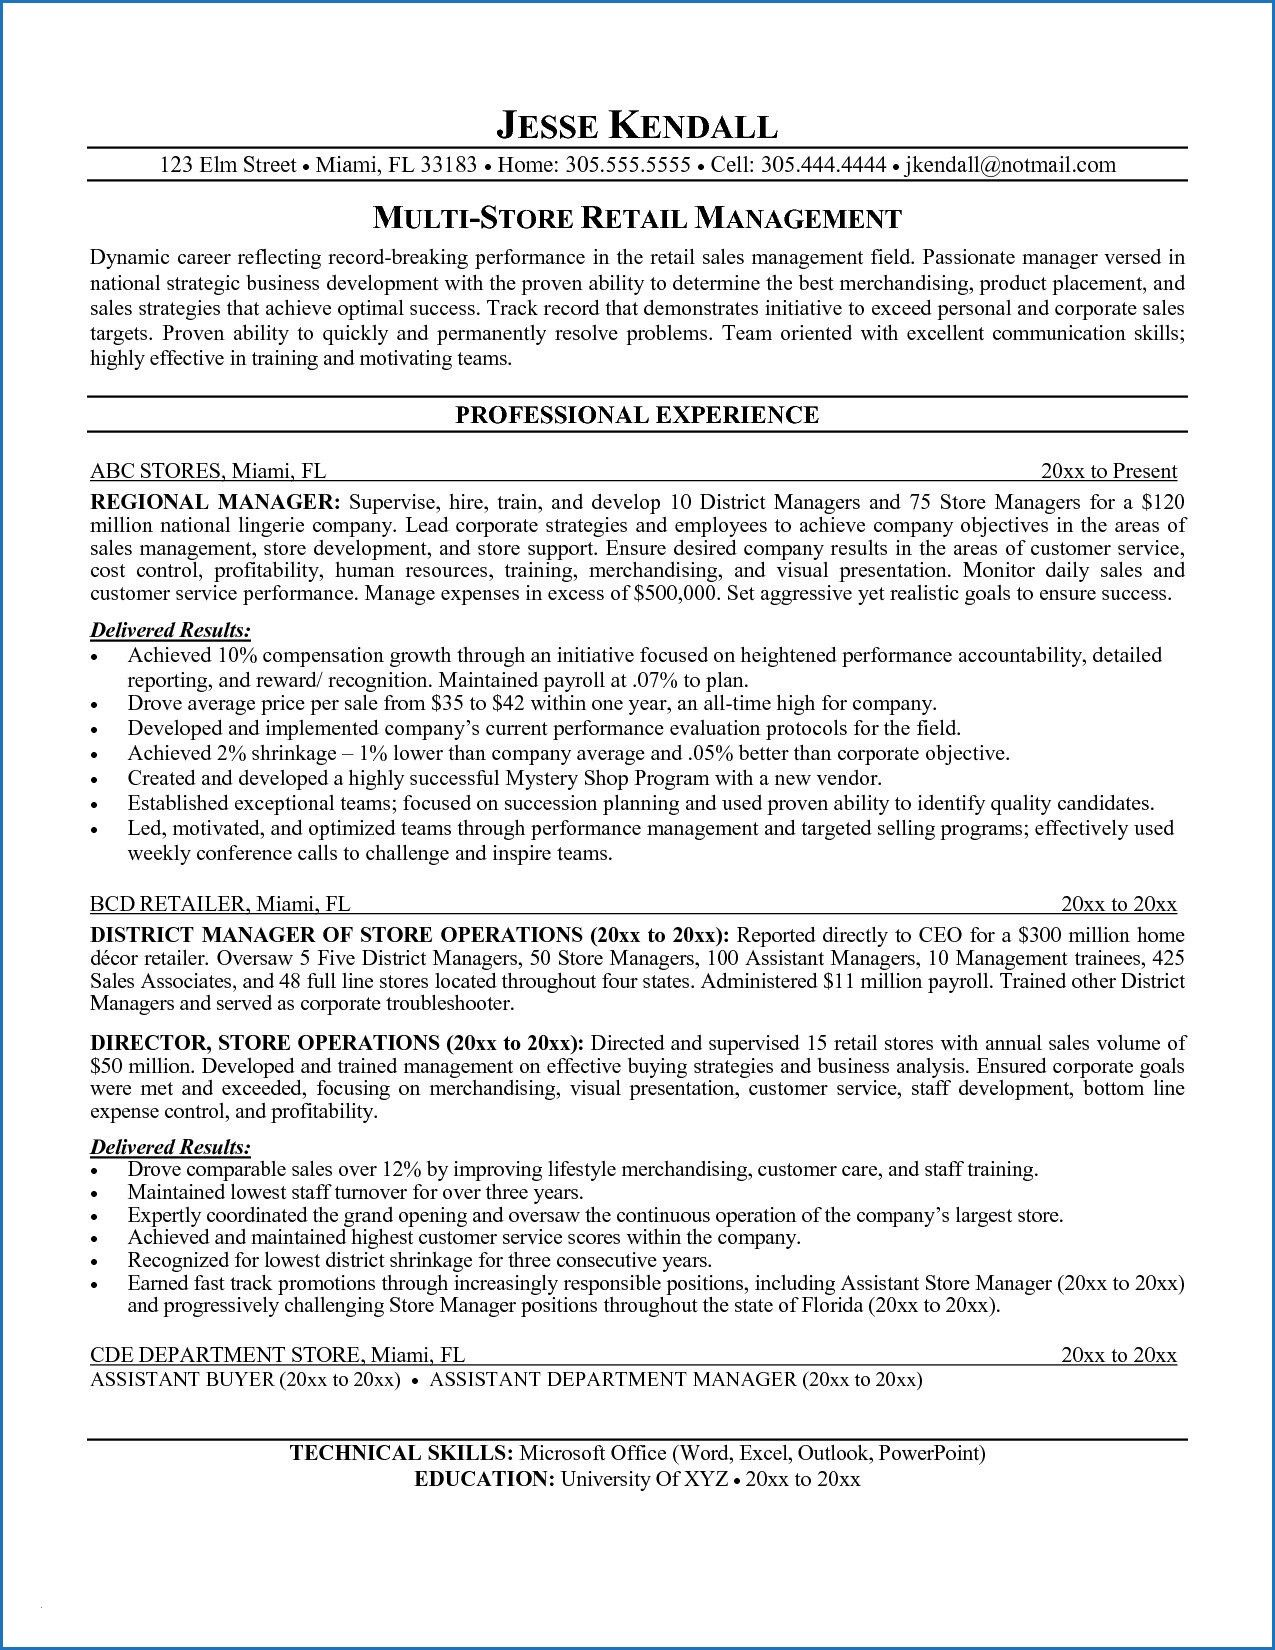 12 Medical Resume Profile Examples